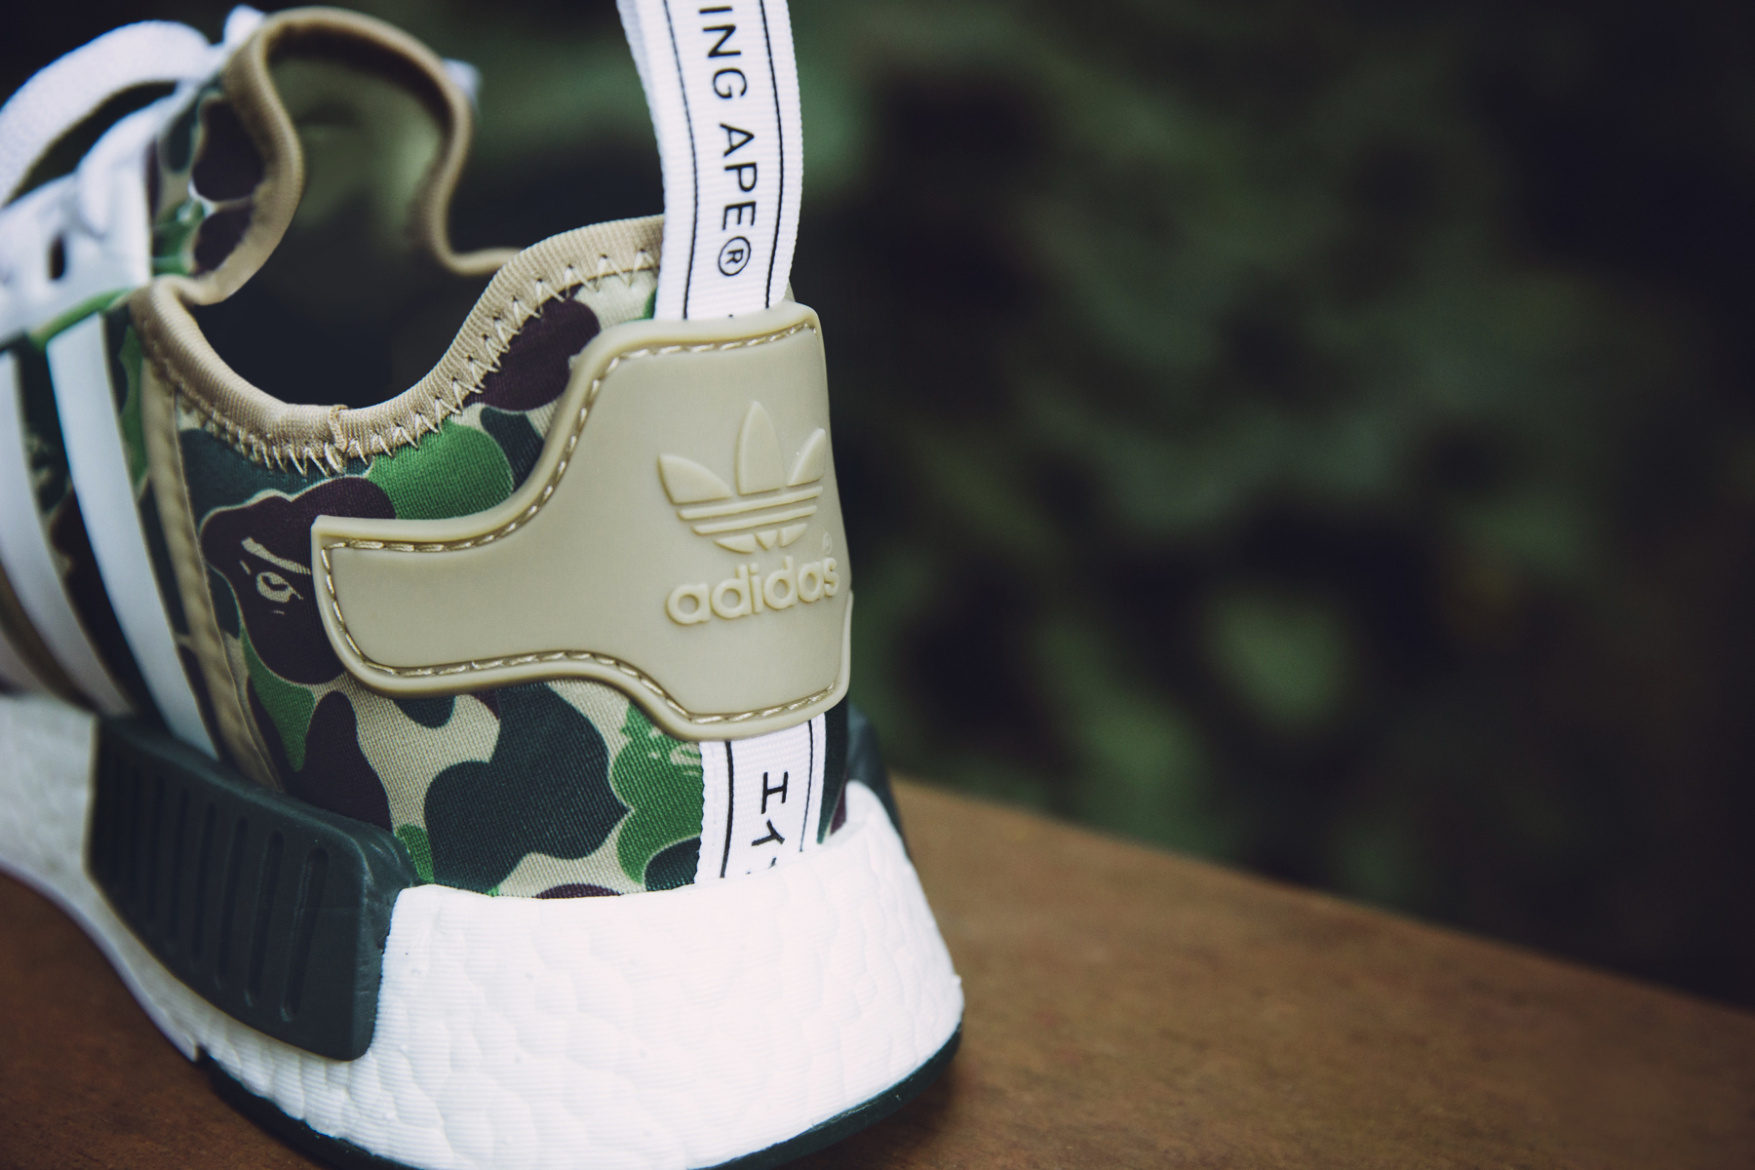 BAPE x adidas Originals – Winning Collection | Buyandship